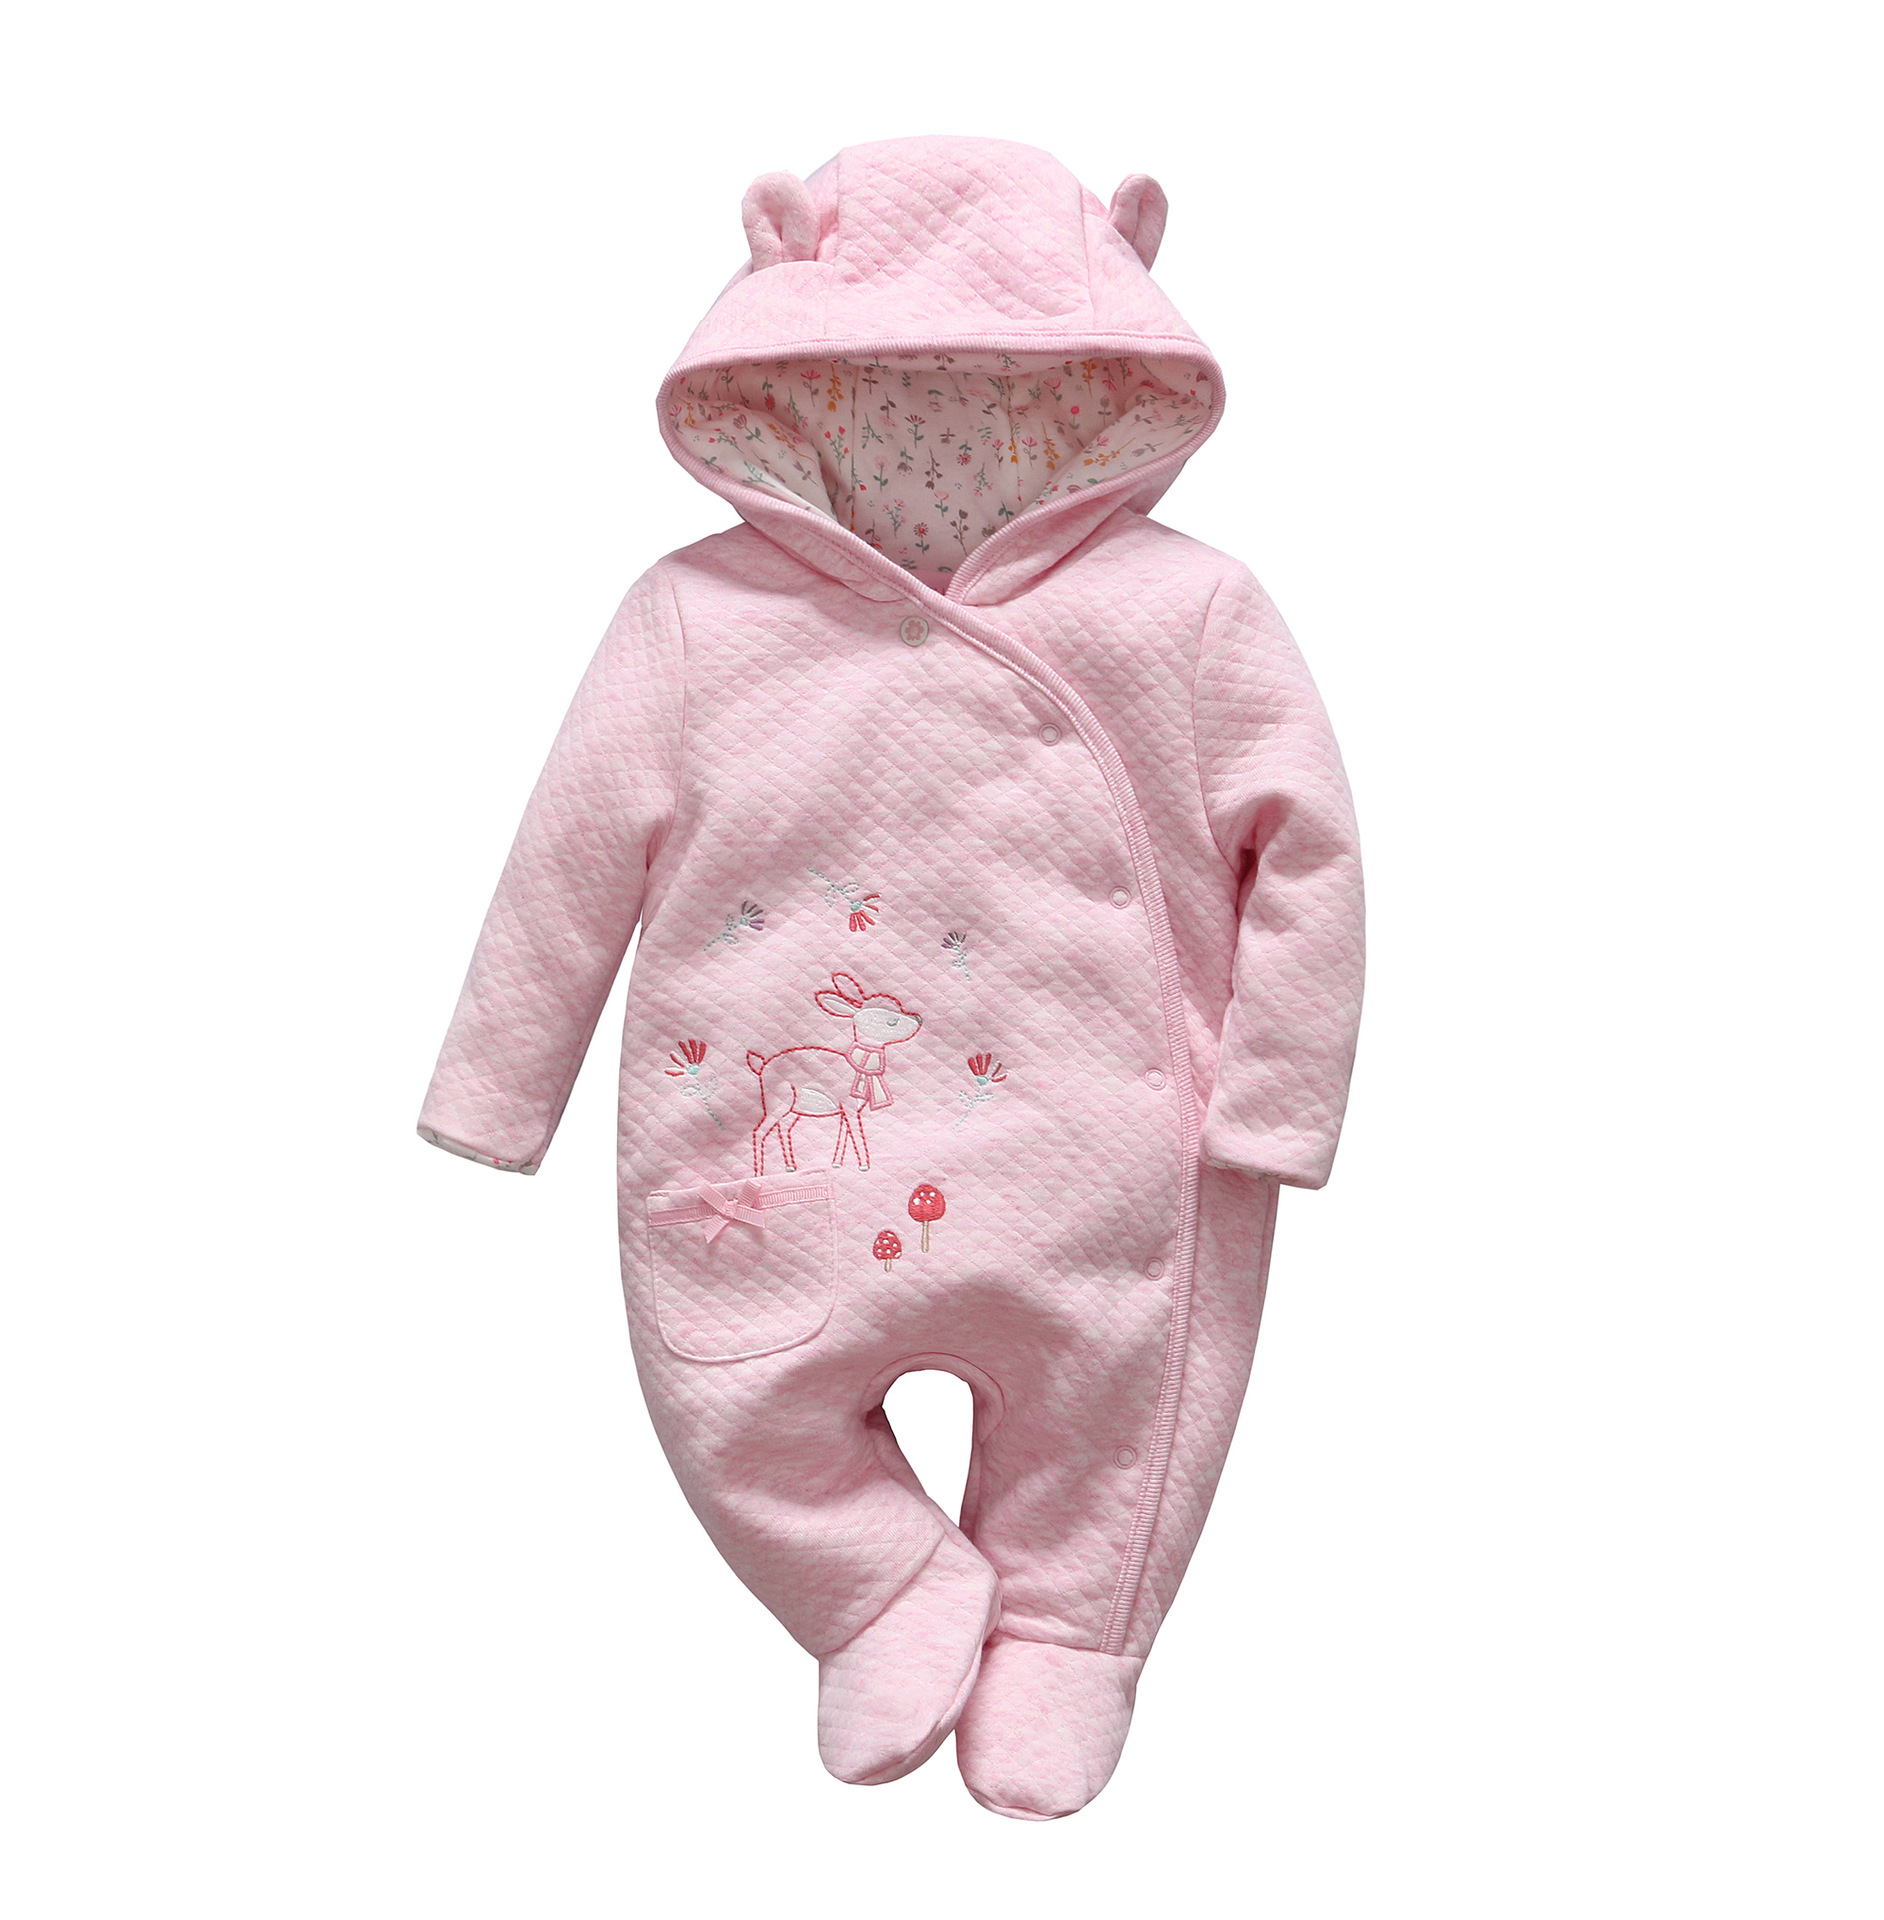 266197bc8d11 2018 Baby Clothes Newborn Baby Girl Winter Clothing Baby Thickening Cotton  Animal Rompers Newborn Floral Hooded Jumpsuit